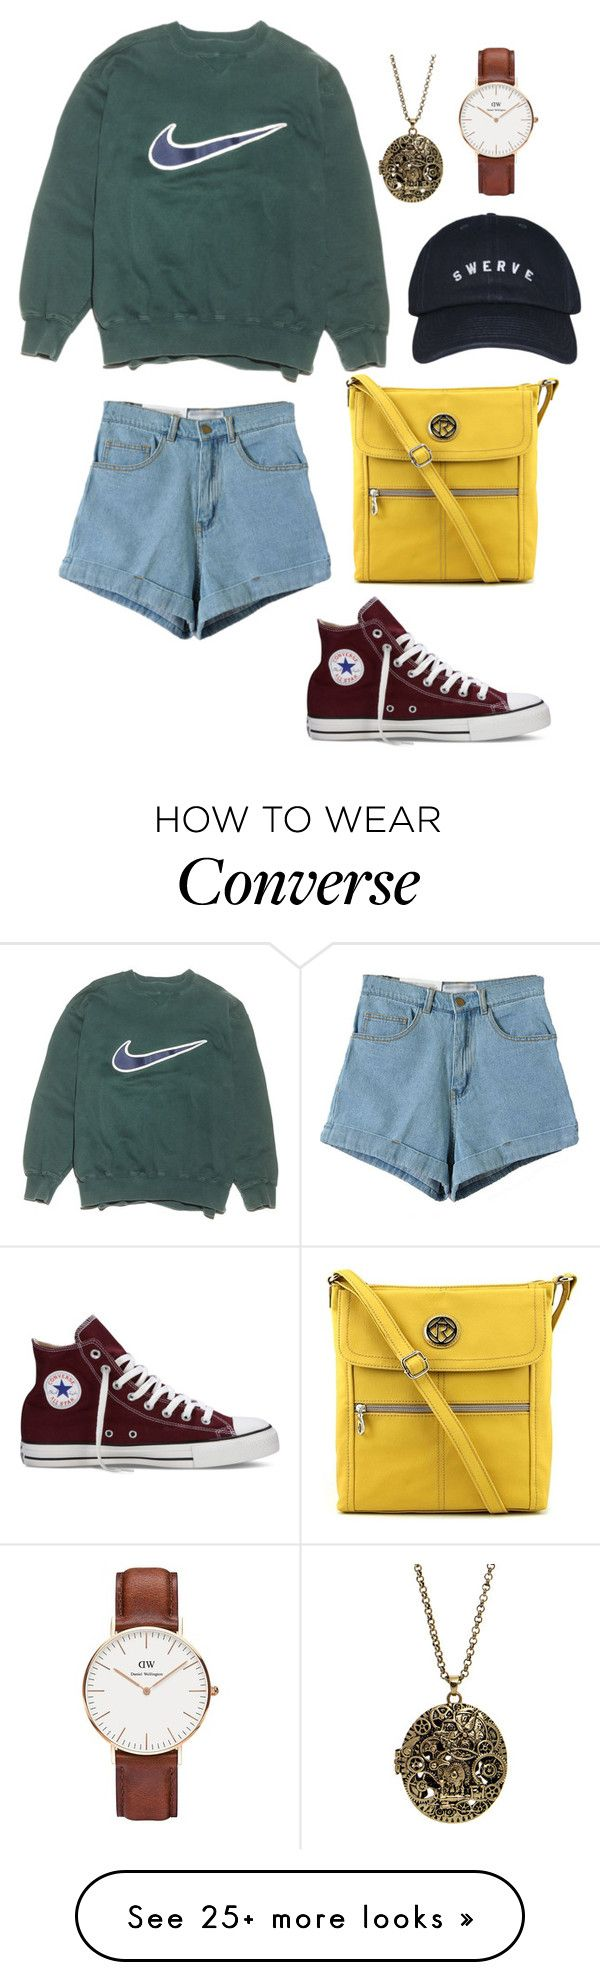 Untitled #405 by whitep on Polyvore featuring NIKE, Converse, Relic, Daniel Wellington, women's clothing, women's fashion, women, female, woman and misses